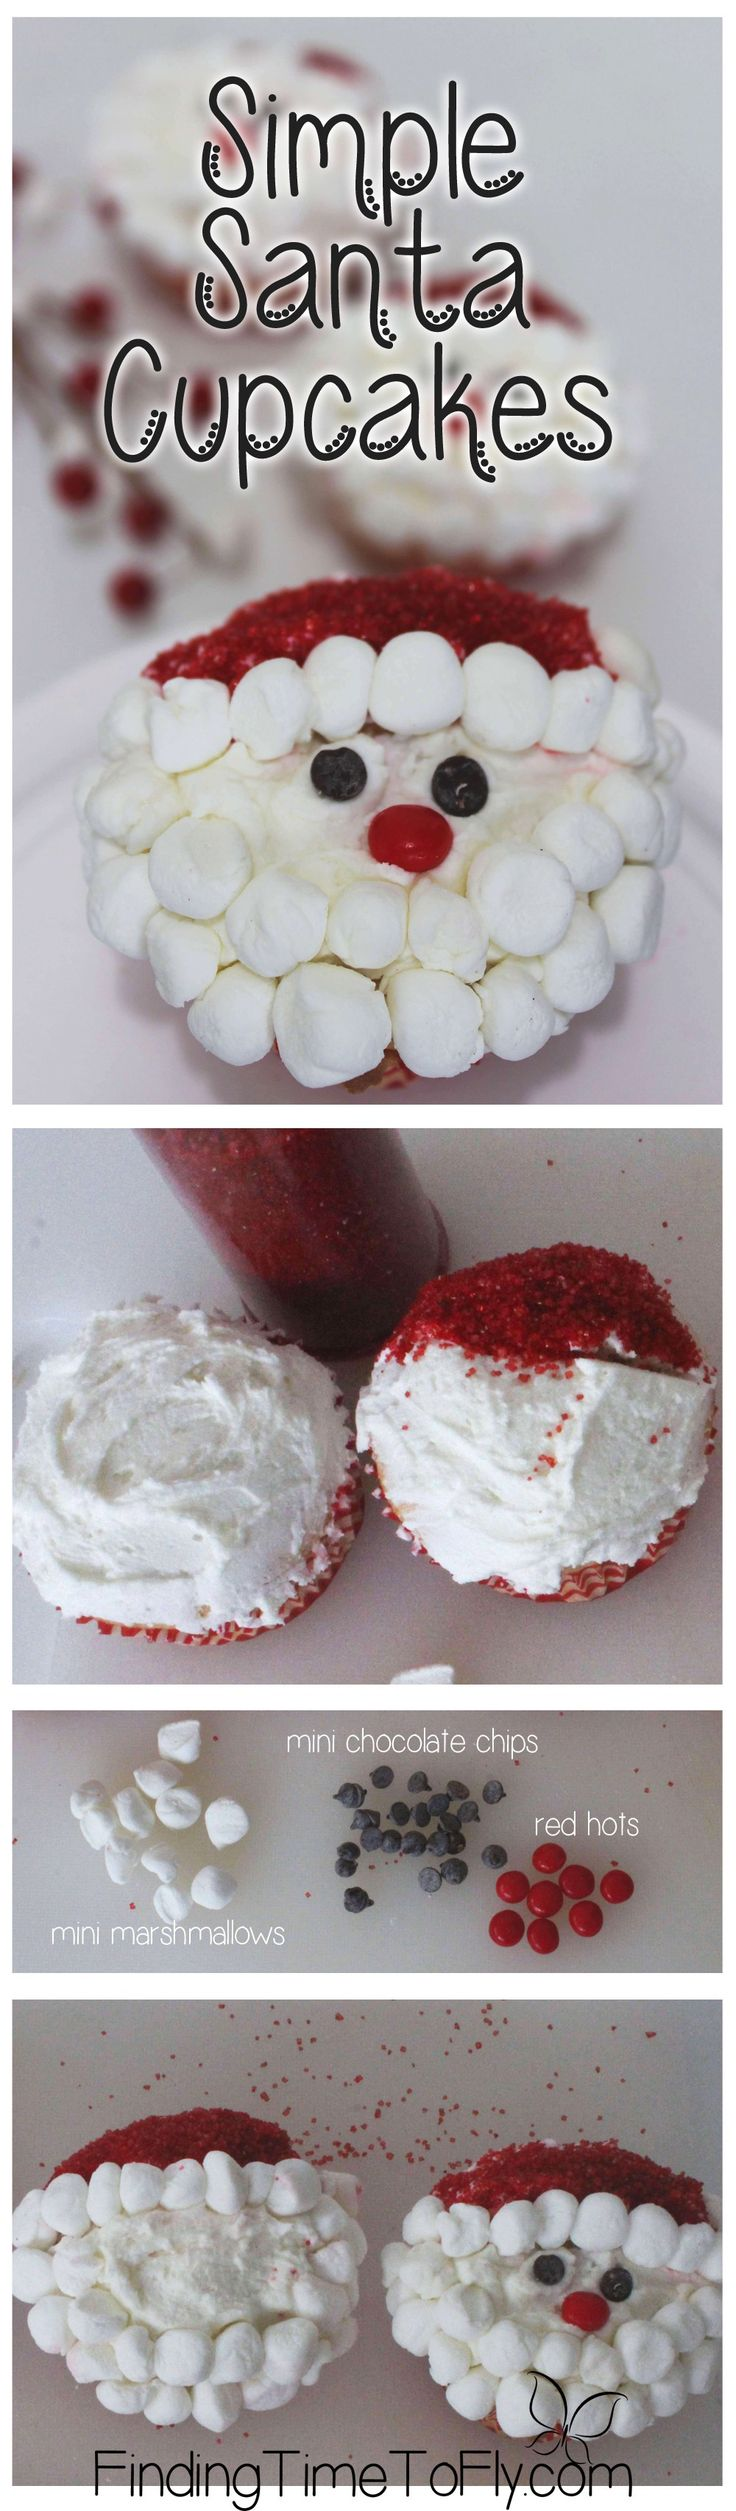 These Simple Santa Cupcakes are adorable! They look easy enough to make with the…